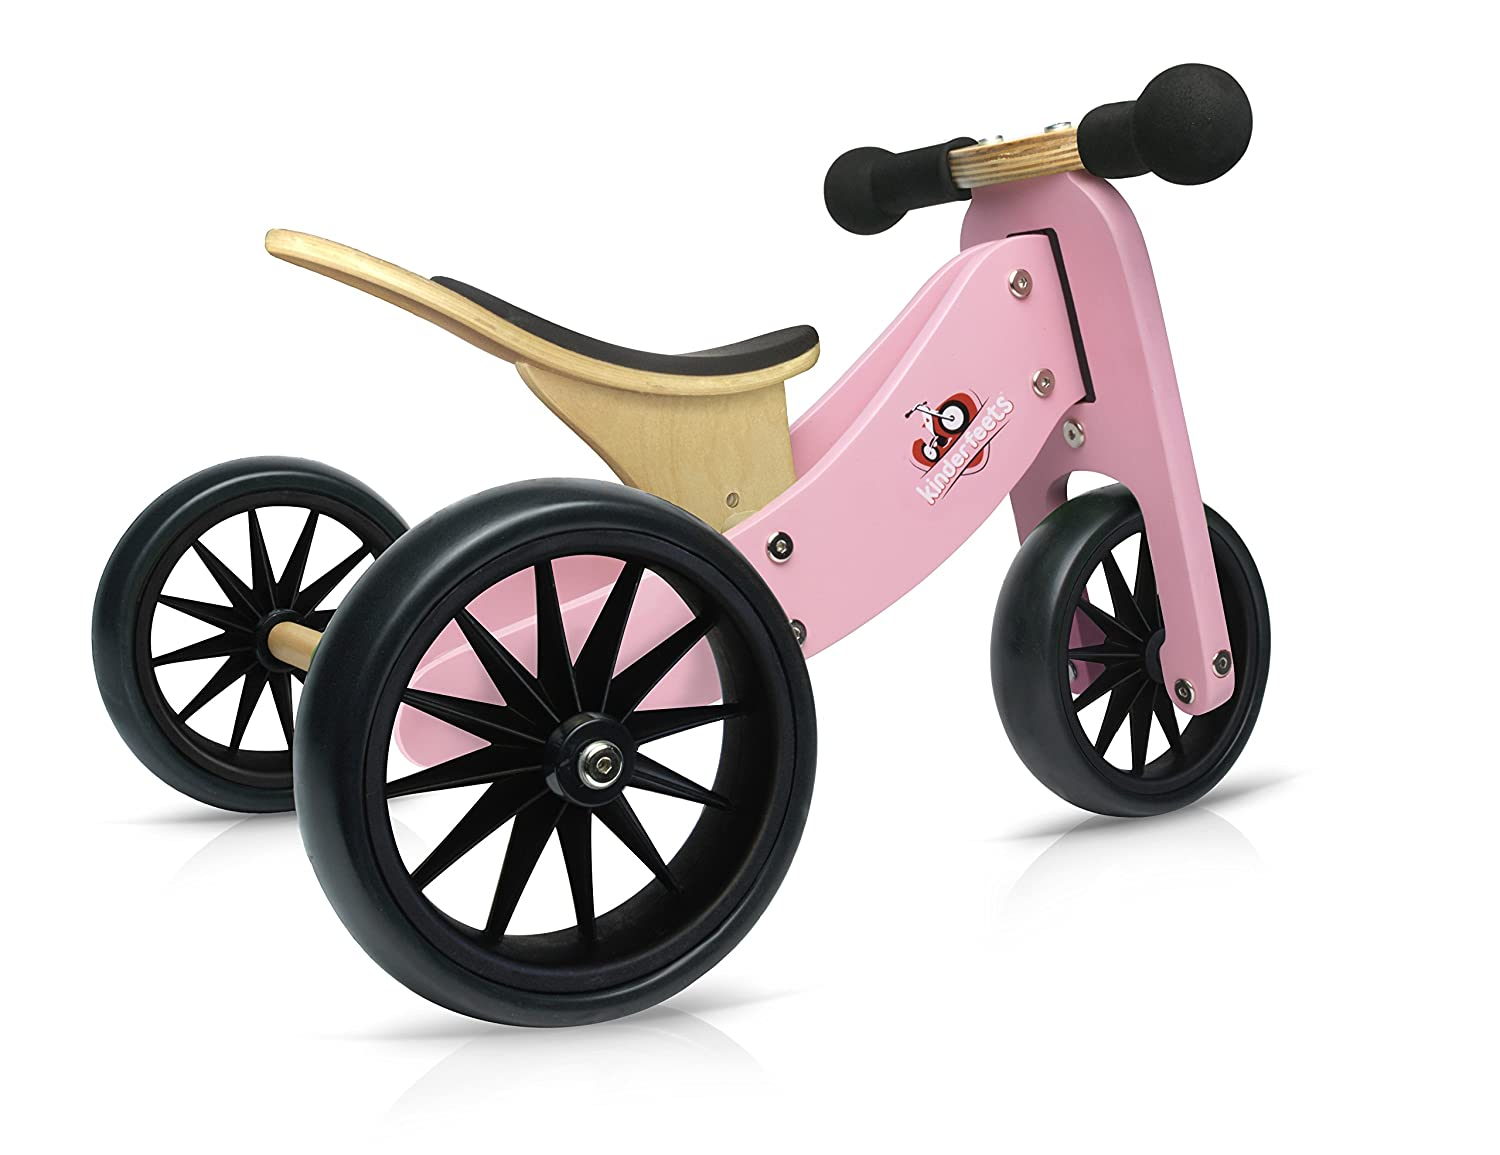 Kinderfeets TinyTot - 2-in-1! Wooden Balance Bike and Tricycle in One. Adjustable Seat. FOR AGES 12 TO 24 MONTHS OLD (Bamboo) 98570